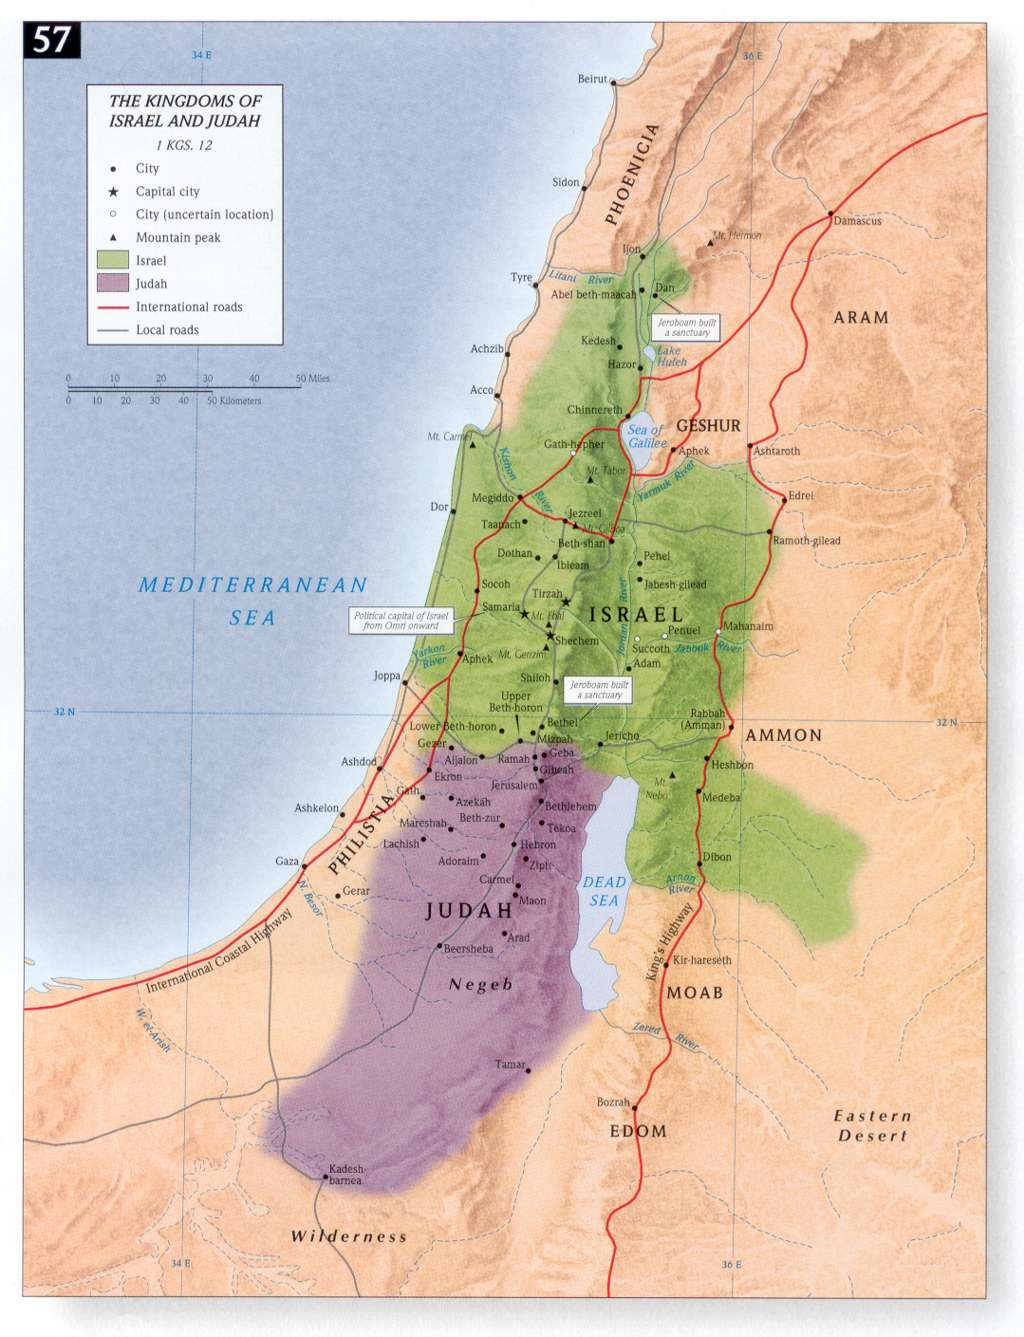 The Kingdoms of Israel and Judah 1